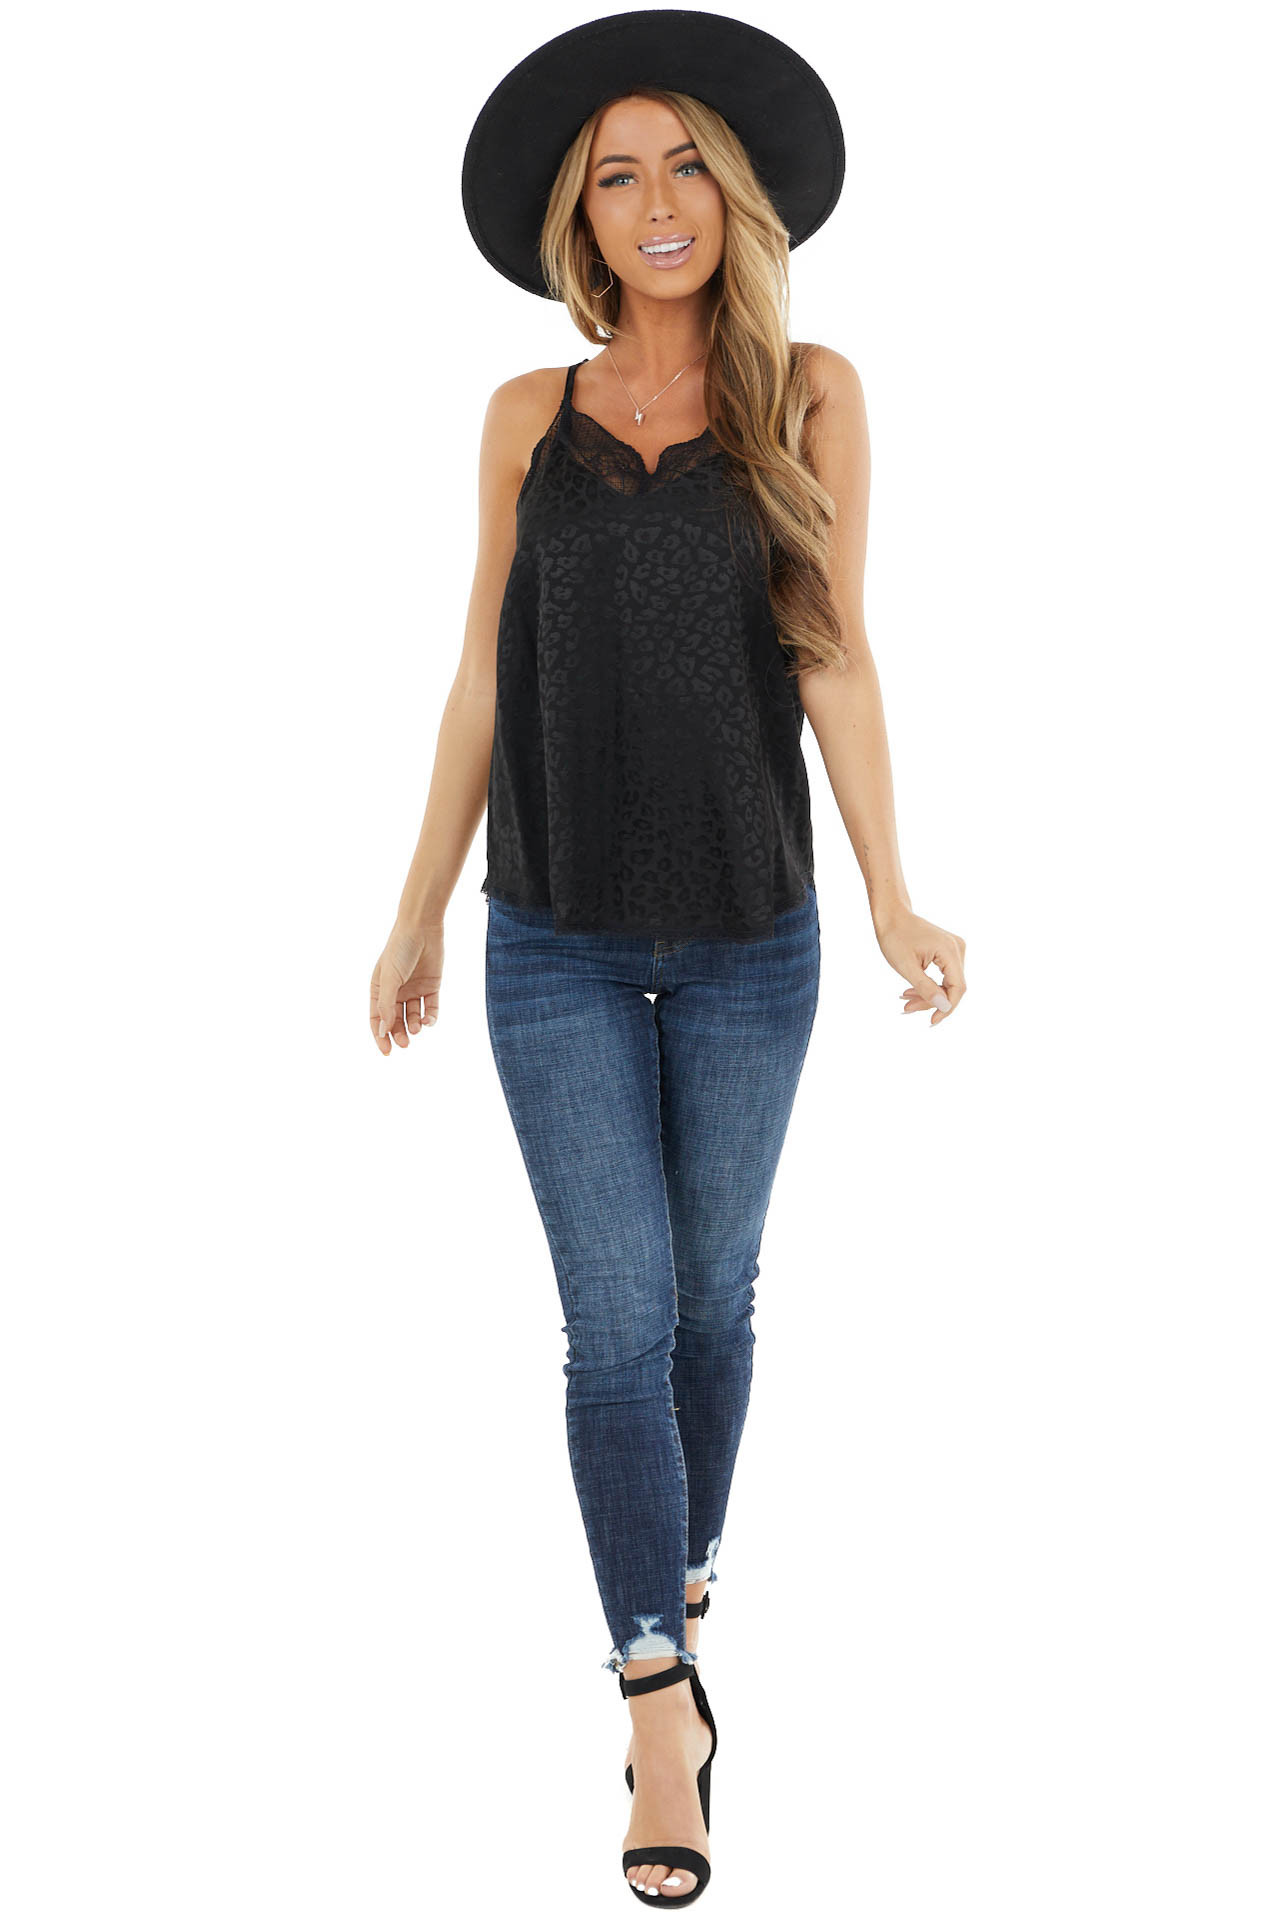 Black Leopard Print Silky Camisole Tank Top with Lace Detail